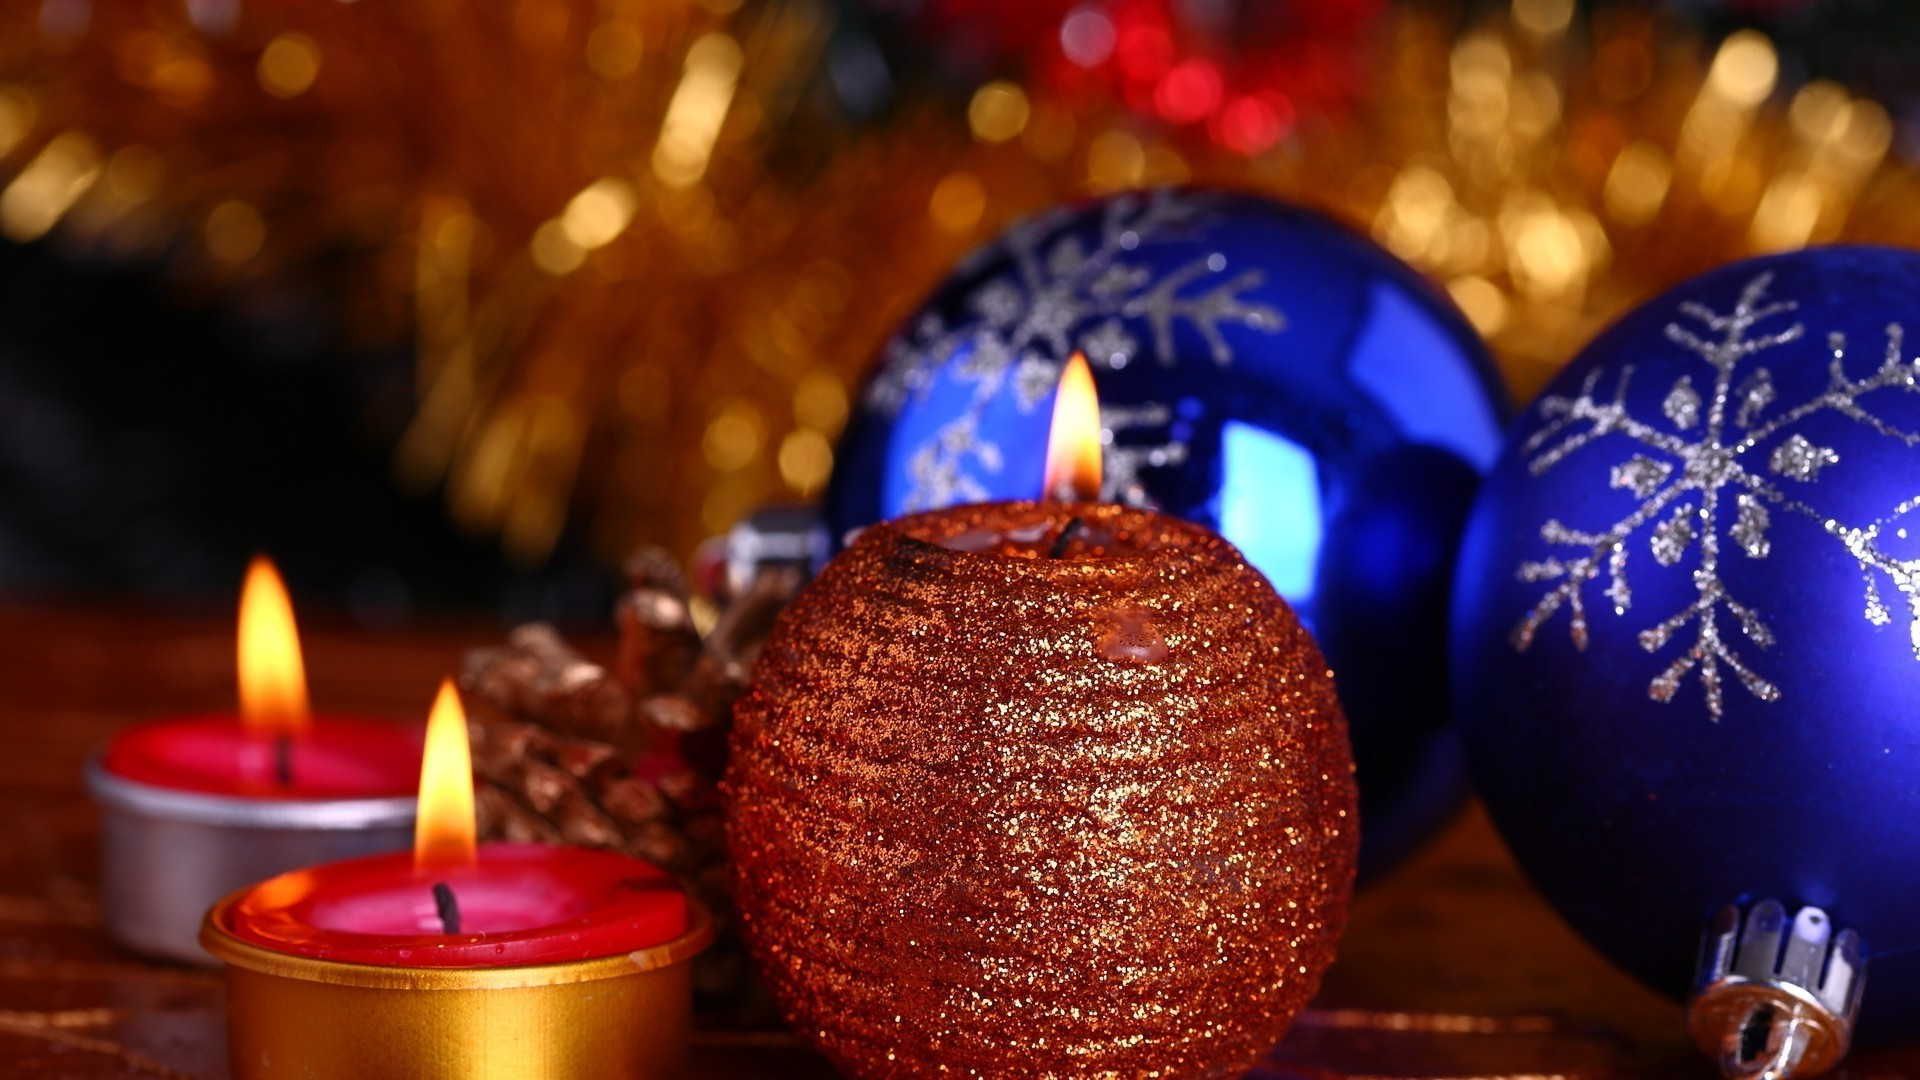 new year christmas candle candlelight winter celebration decoration light shining gold ball advent flame bright burnt thread merry traditional sphere wax